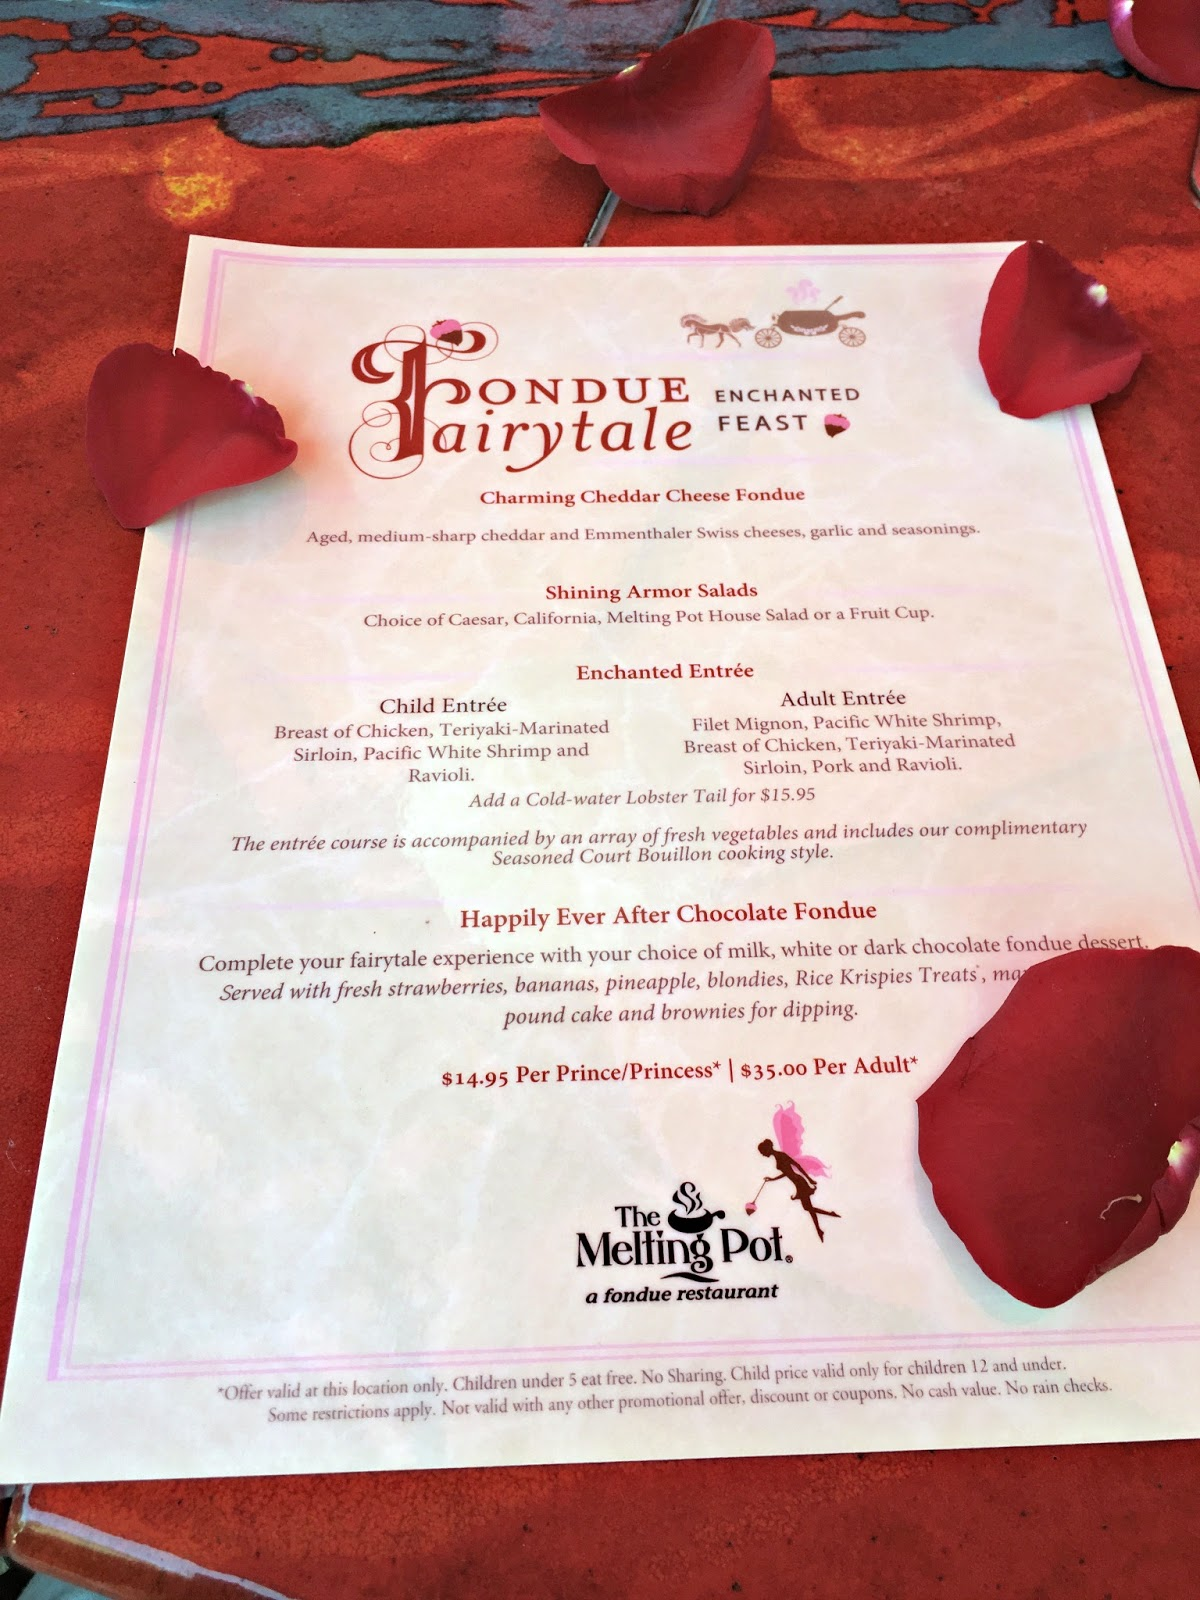 photo regarding Melting Pot Coupons Printable named Fondue Fairytales with The Melting Pot - We Obtained The Funk